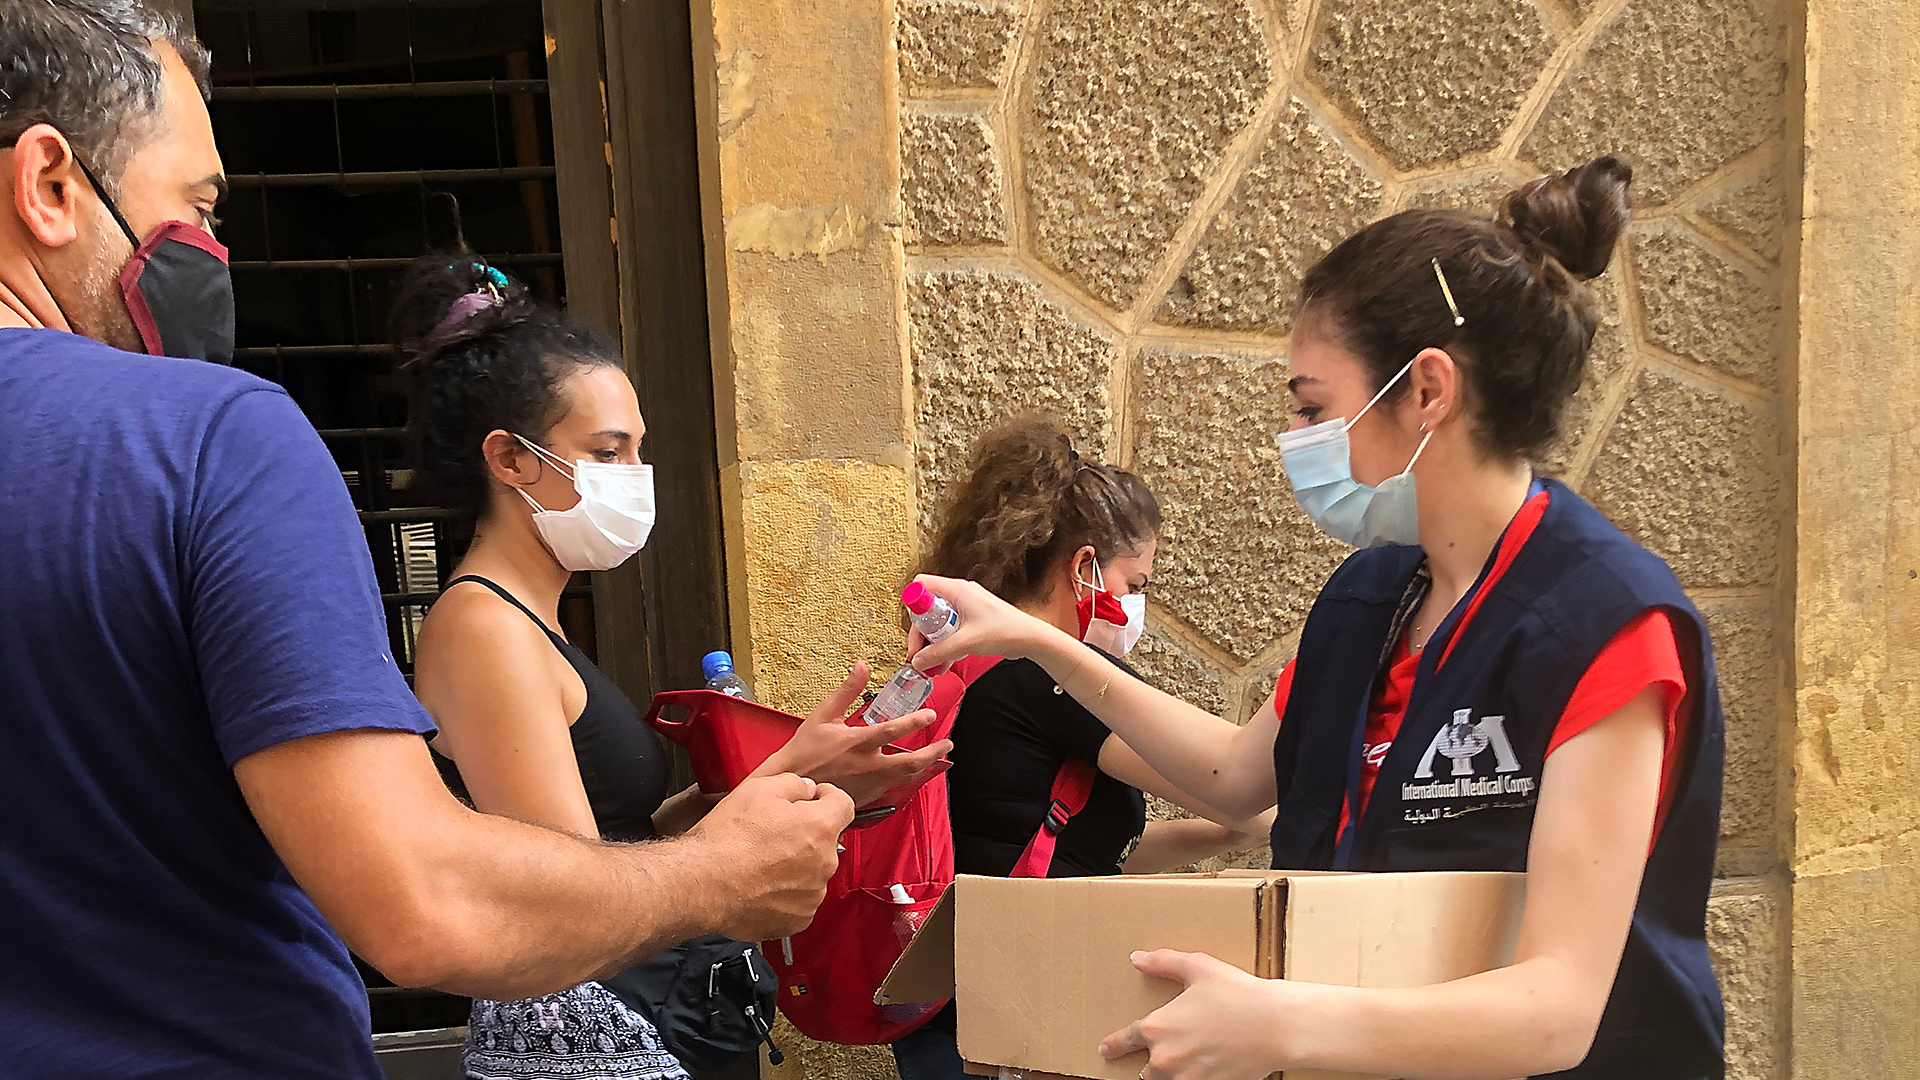 Lama, a disability officer for International Medical Corps, distributes hygiene supplies to volunteers who are cleaning up areas in Beirut affected by the port explosion. The supplies will help prevent COVID-19.